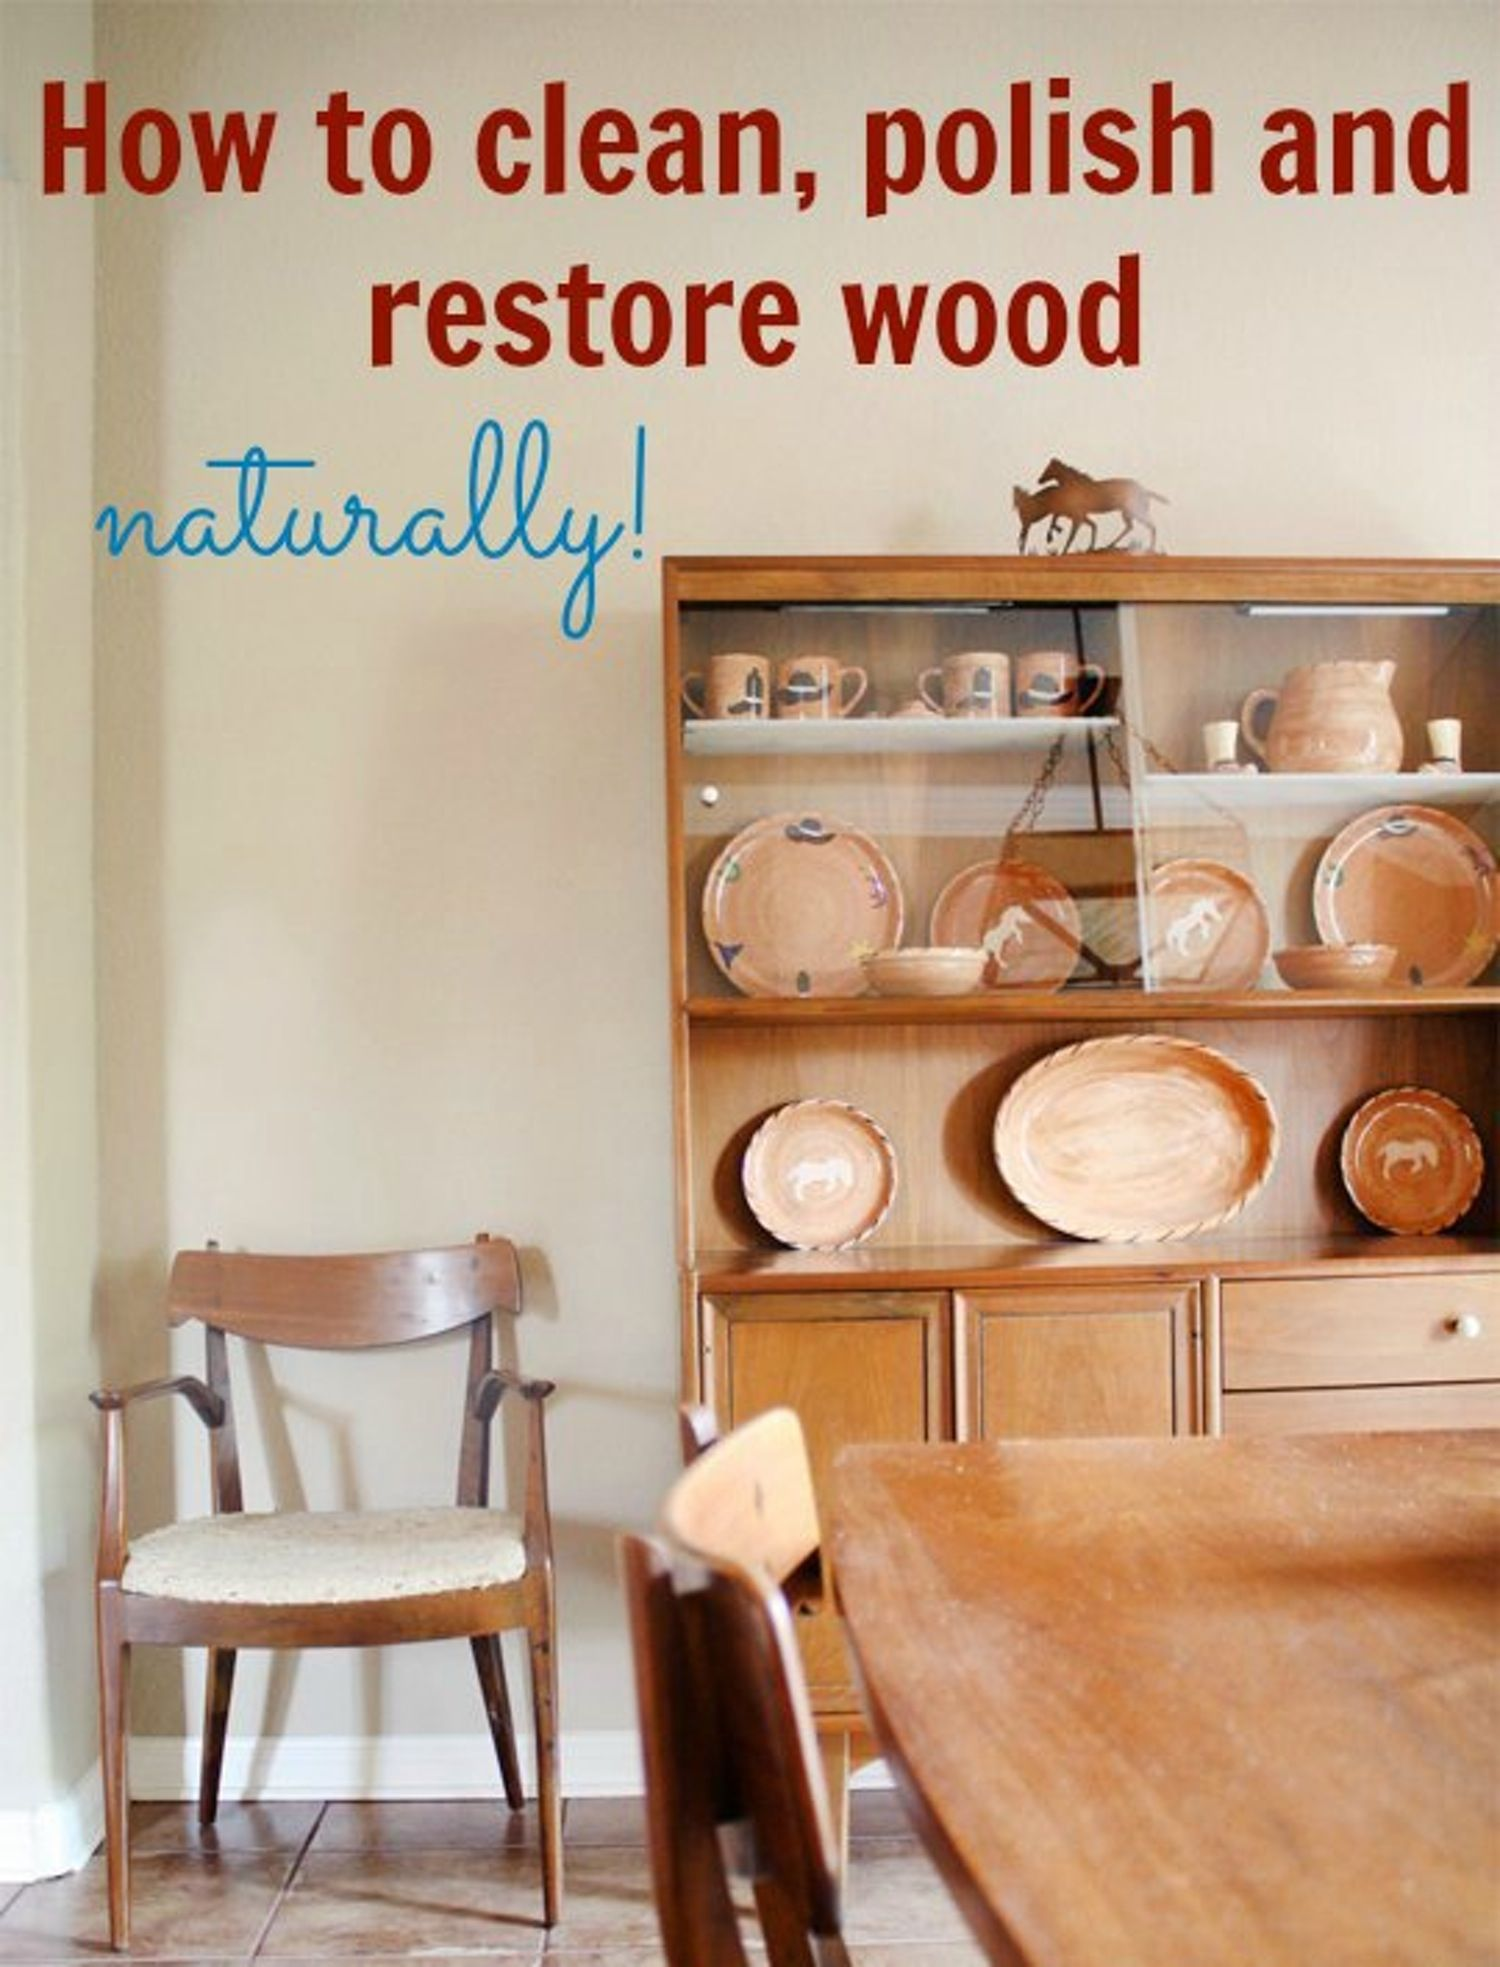 5 Natural Diy Recipes For Cleaning Polishing Restoring Wood Restore Wood Diy Food Recipes Cleaning Wood